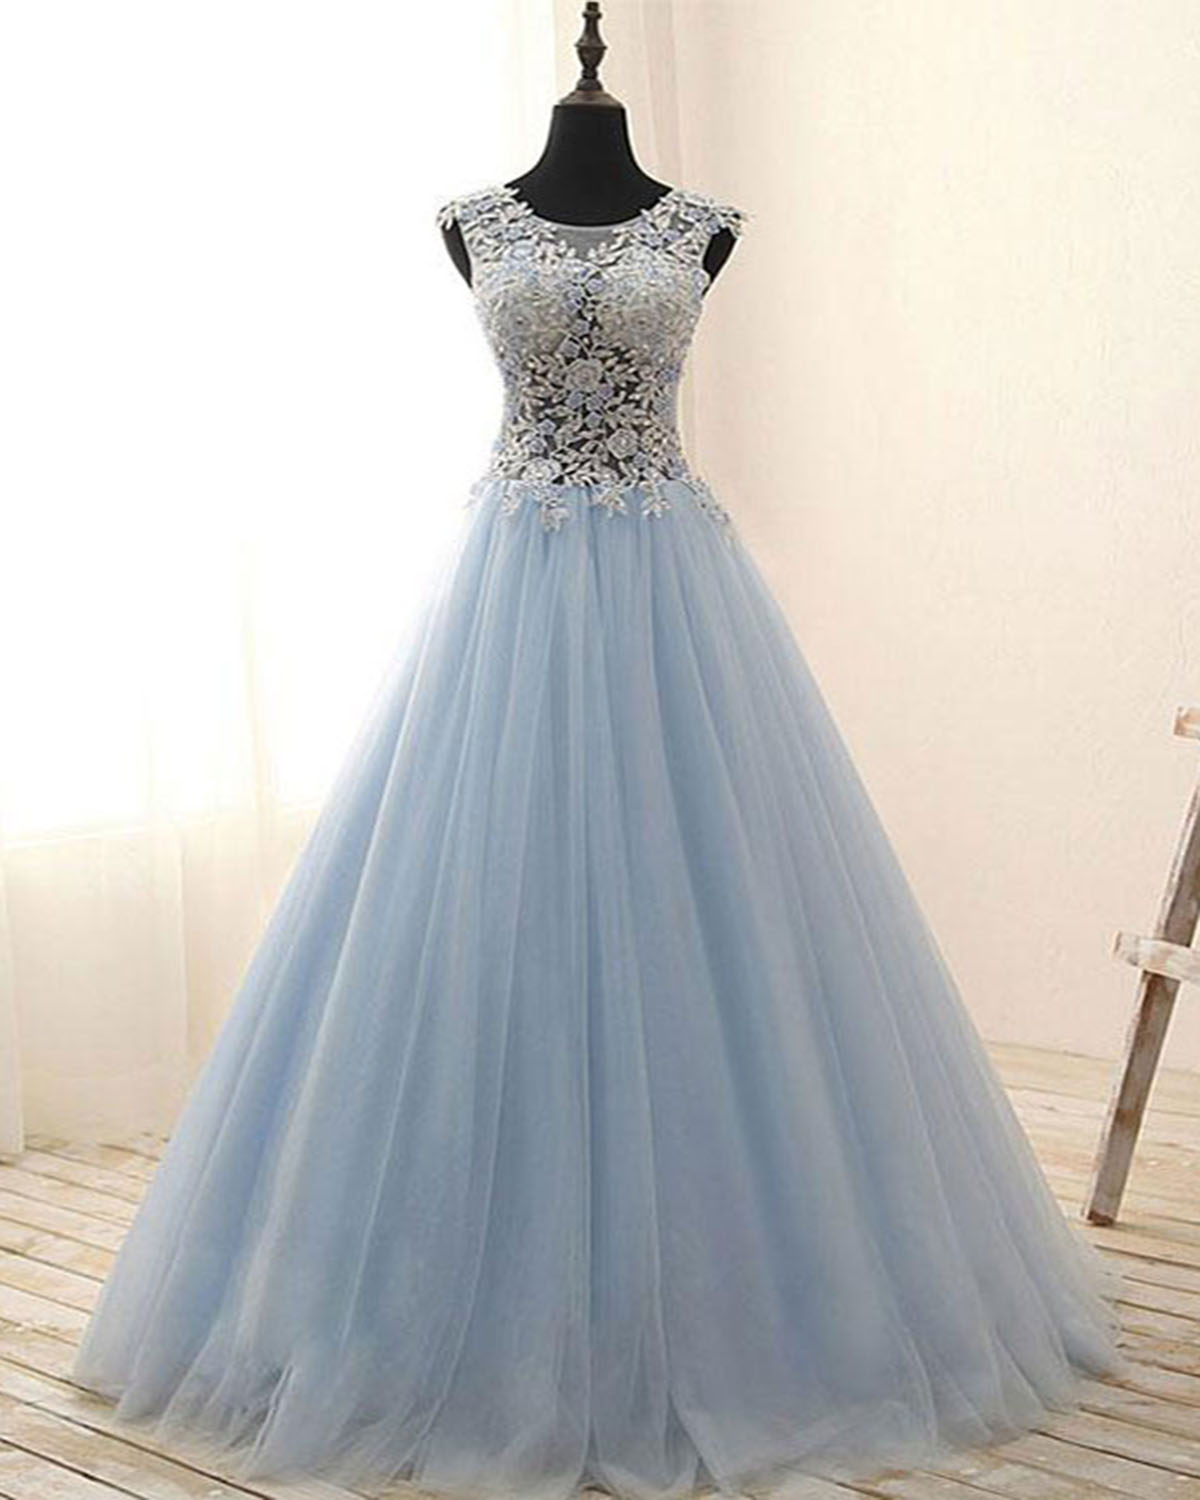 20b85eee46aa Elegant light blue tulle see through long A-line halter evening dress,  flower lace